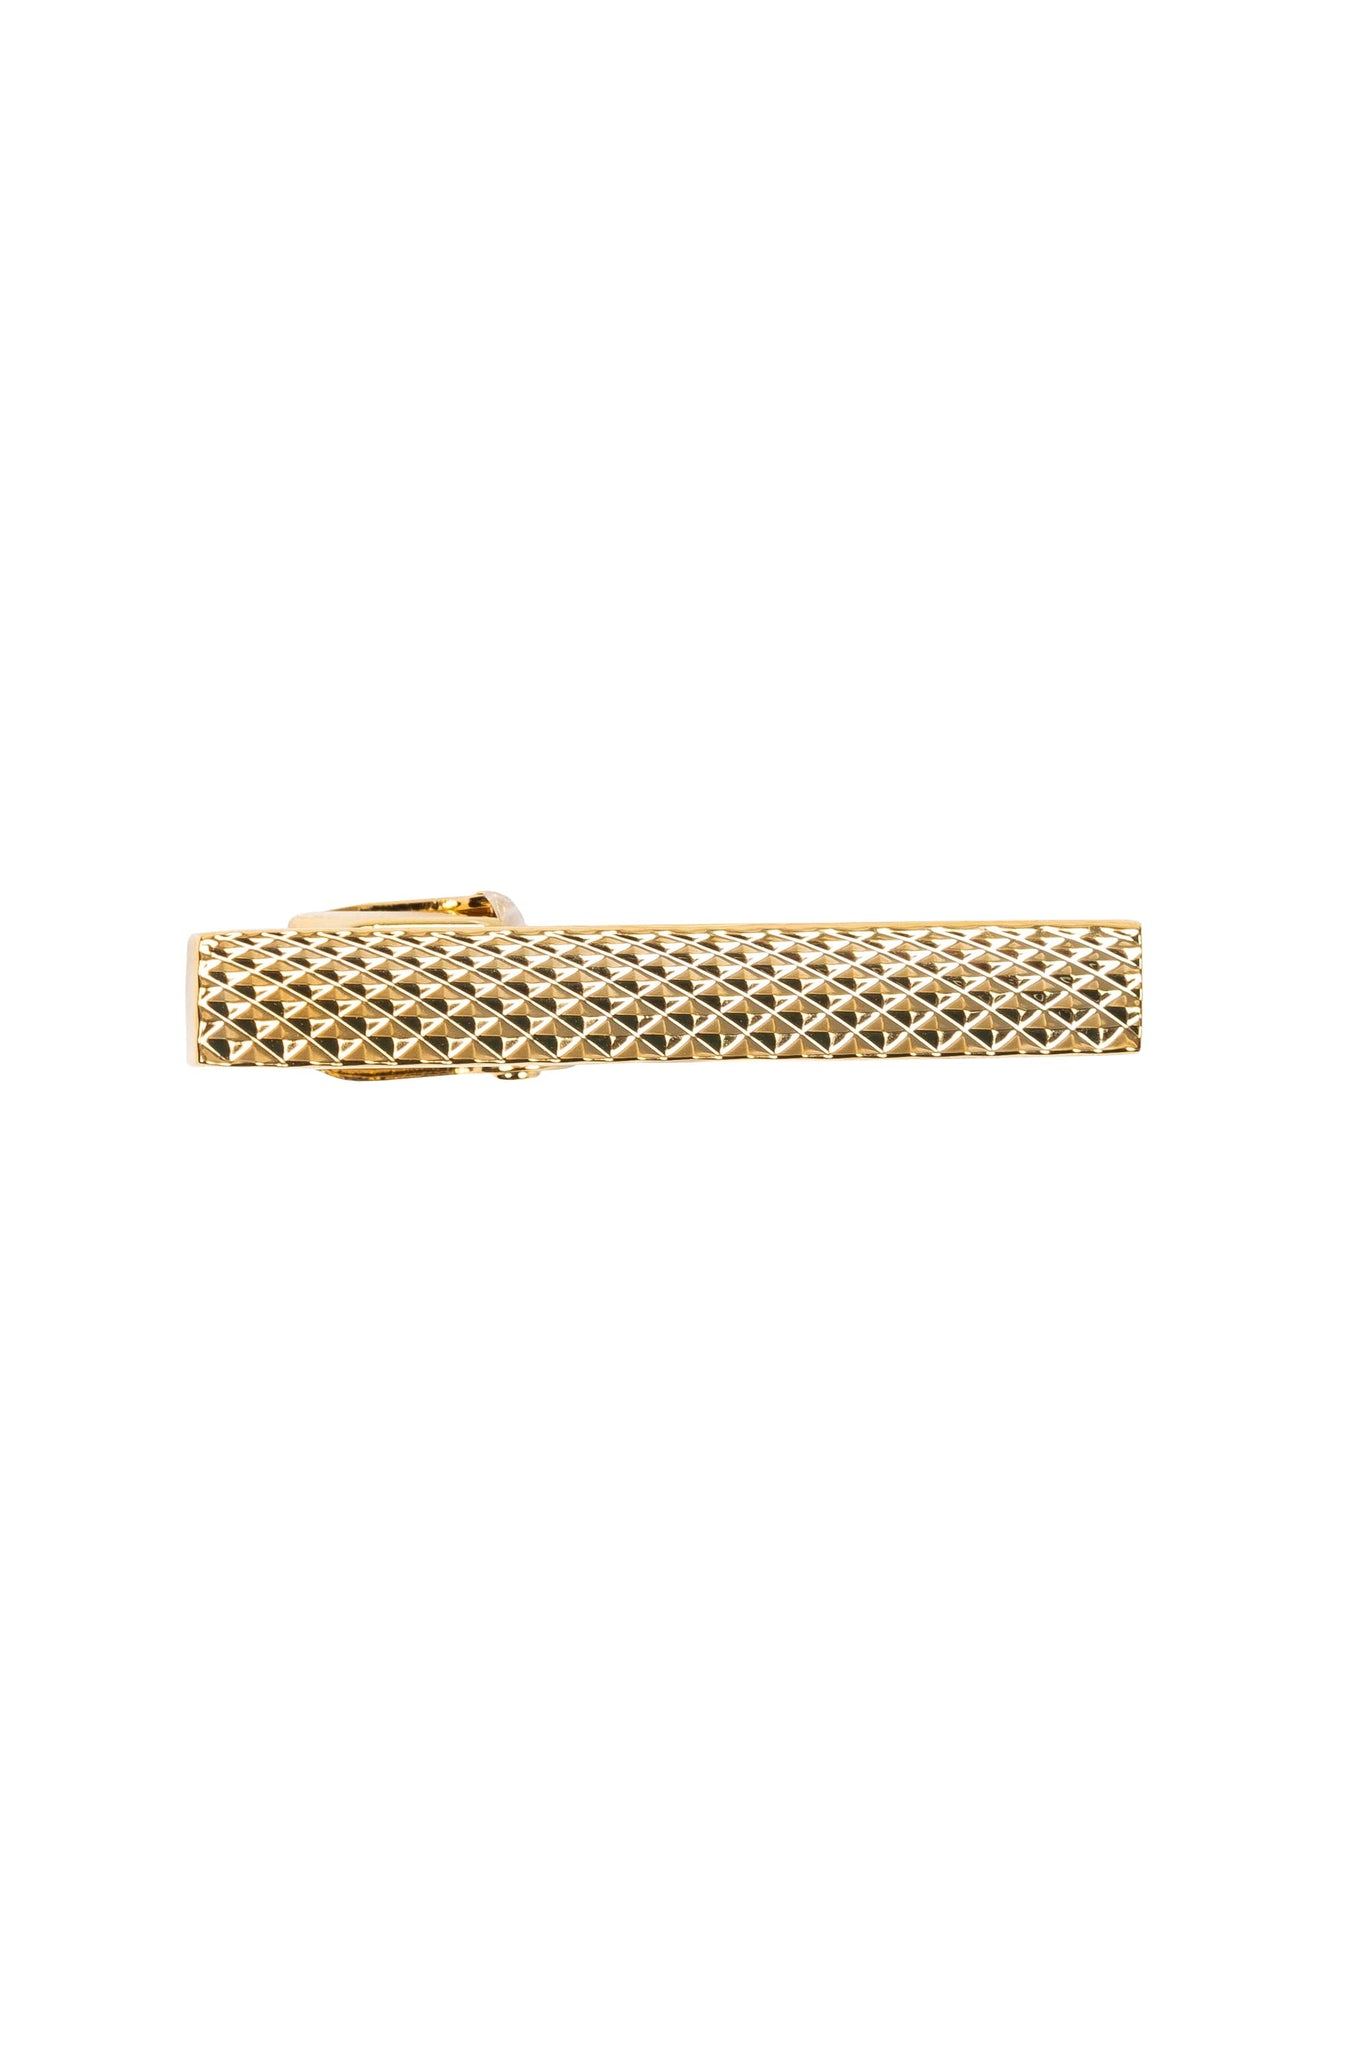 Patterned Golden Bar